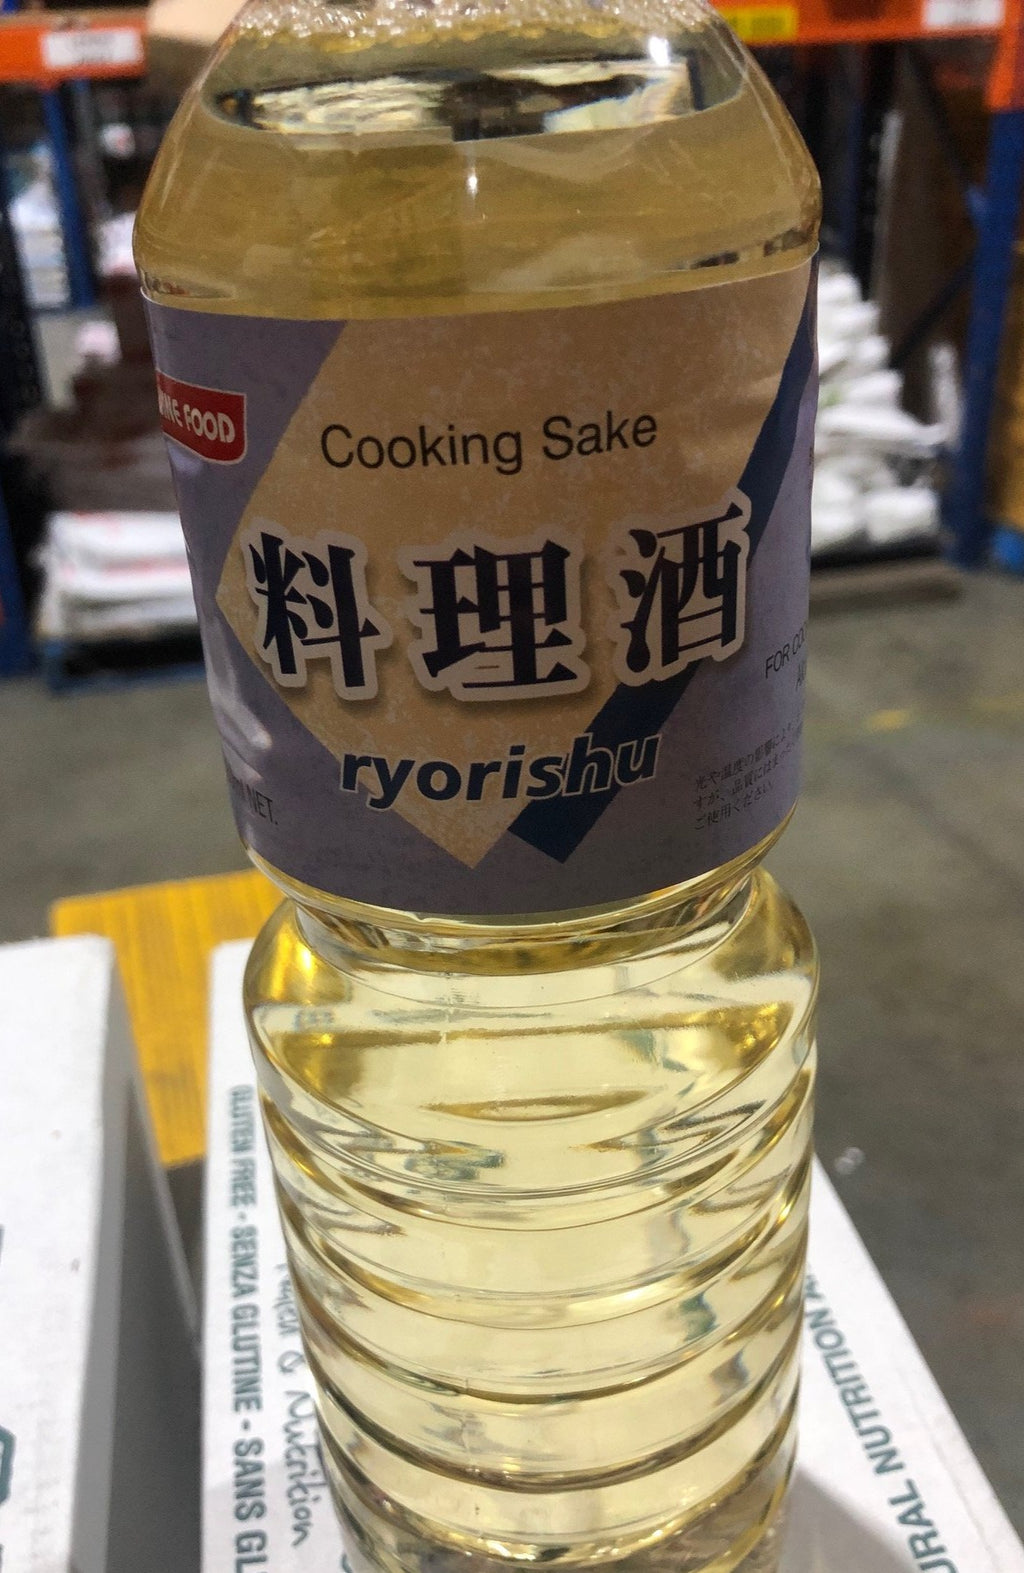 Cooking Sake Gluten Free (Japanese Cooking Seasoning) 880ml Bottle Hinode Ryorishu